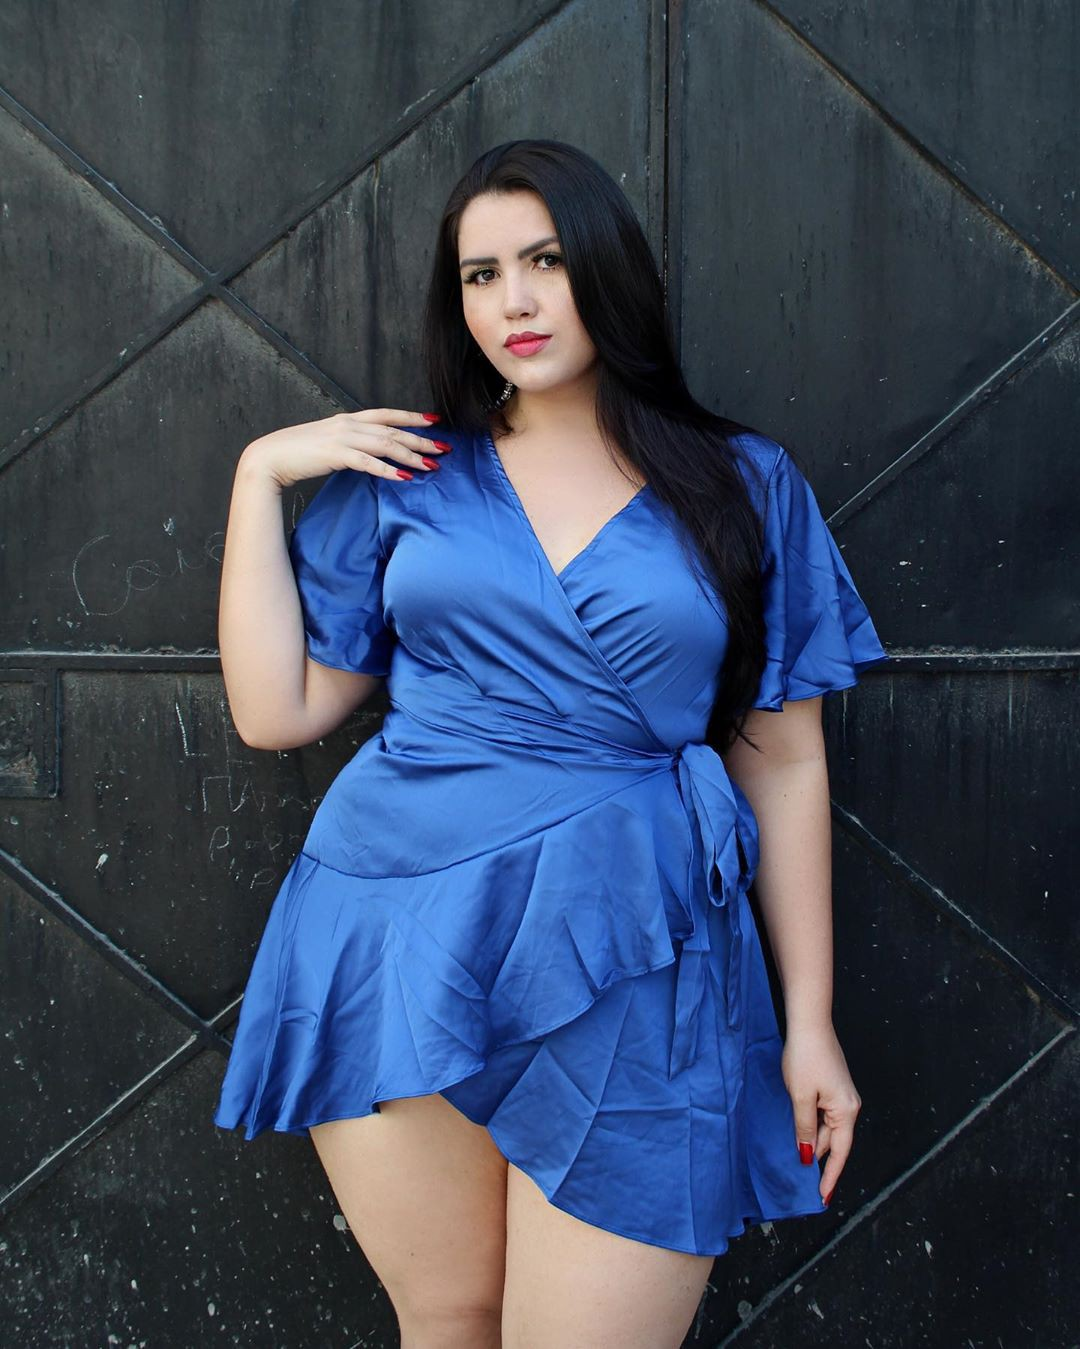 Electric blue and cobalt blue dress, instagram photoshoot, hot legs